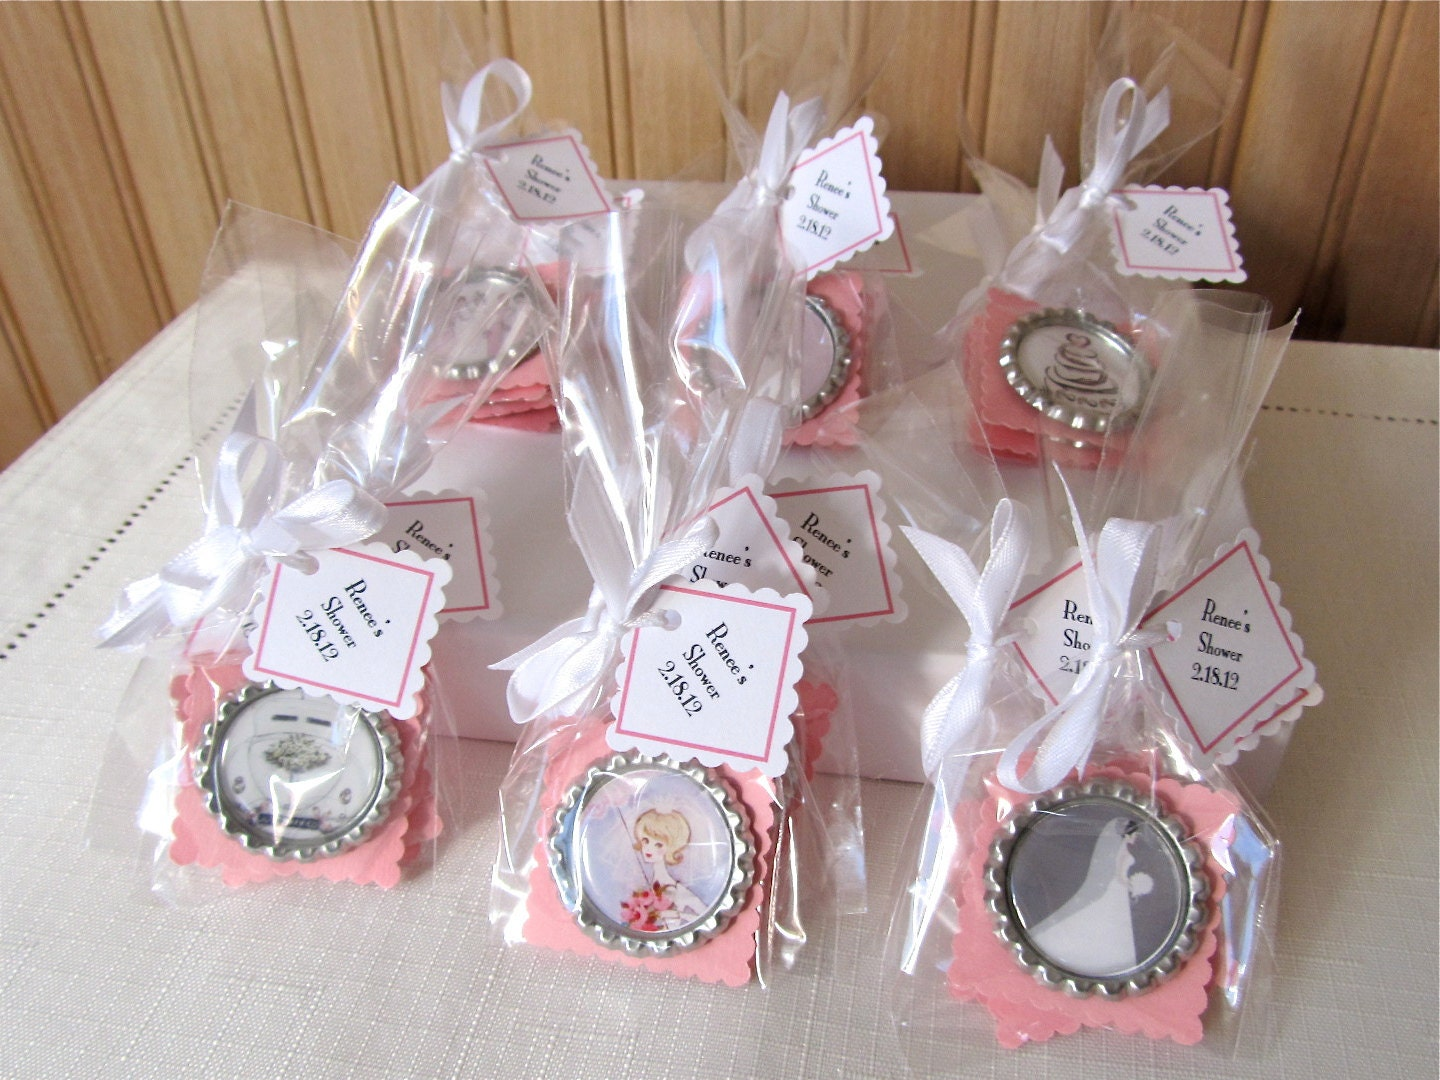 Homemade Wedding Shower Gifts: Bridal Shower Favor Magnets By LeahRHood On Etsy